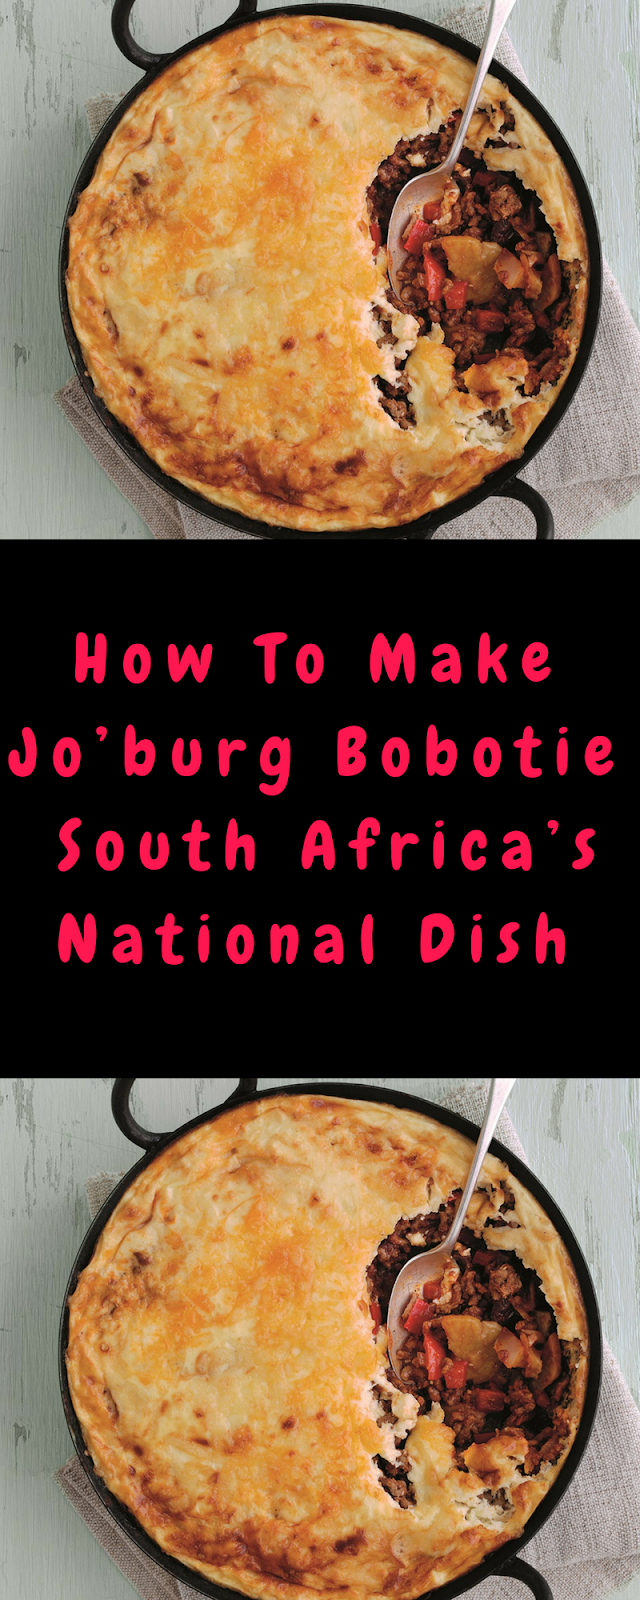 Jo'burg Bobotie: South Africa's National Dish